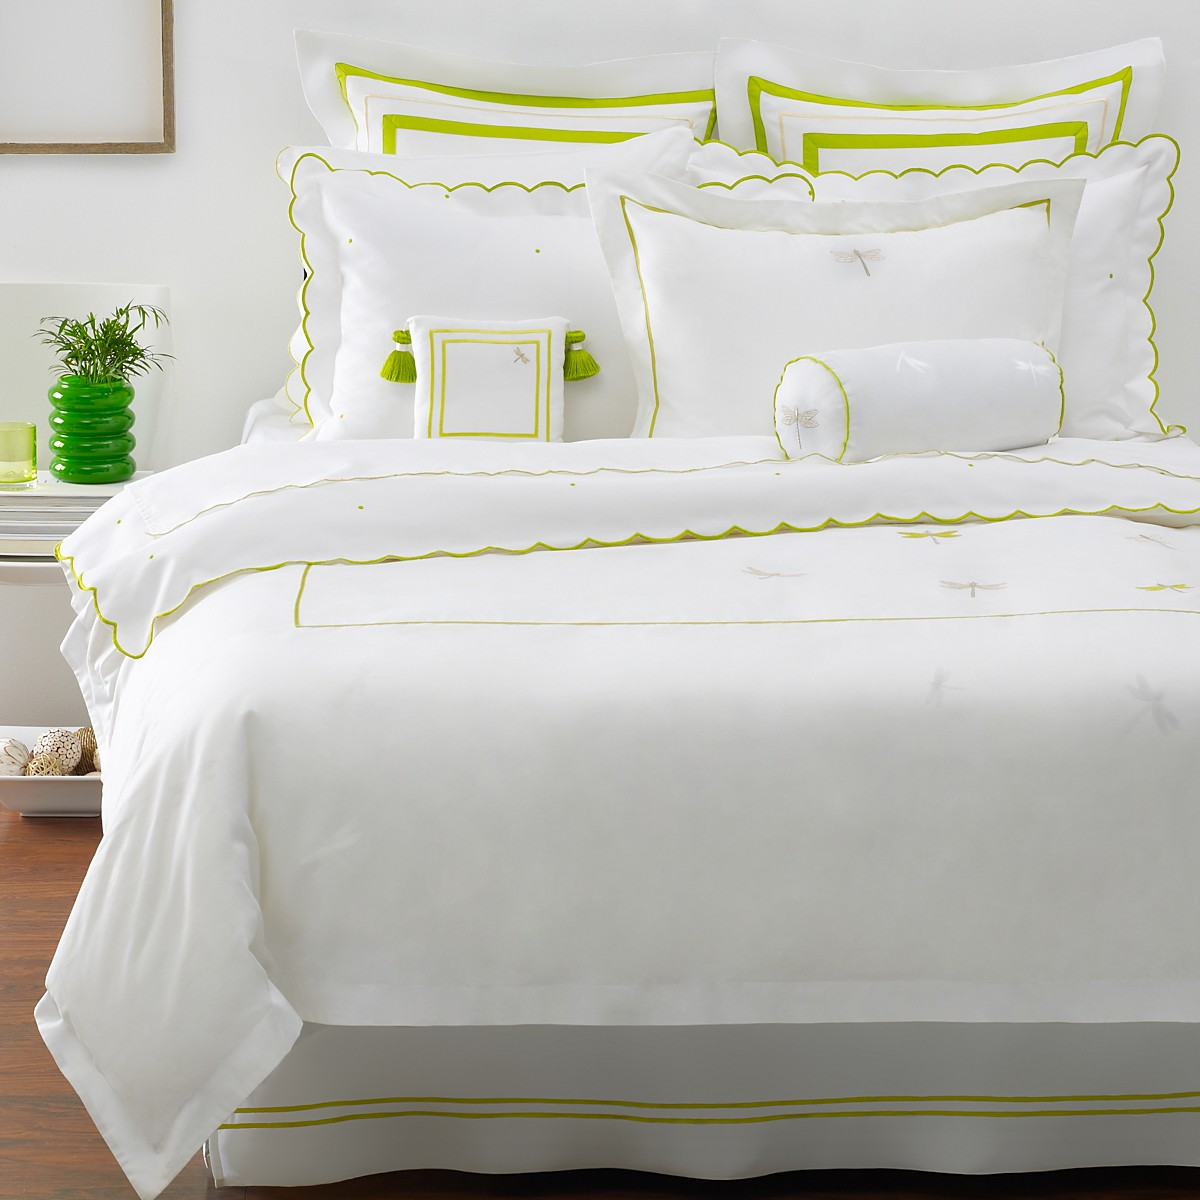 Kate Spade June Lane Embroidered King Duvet Cover